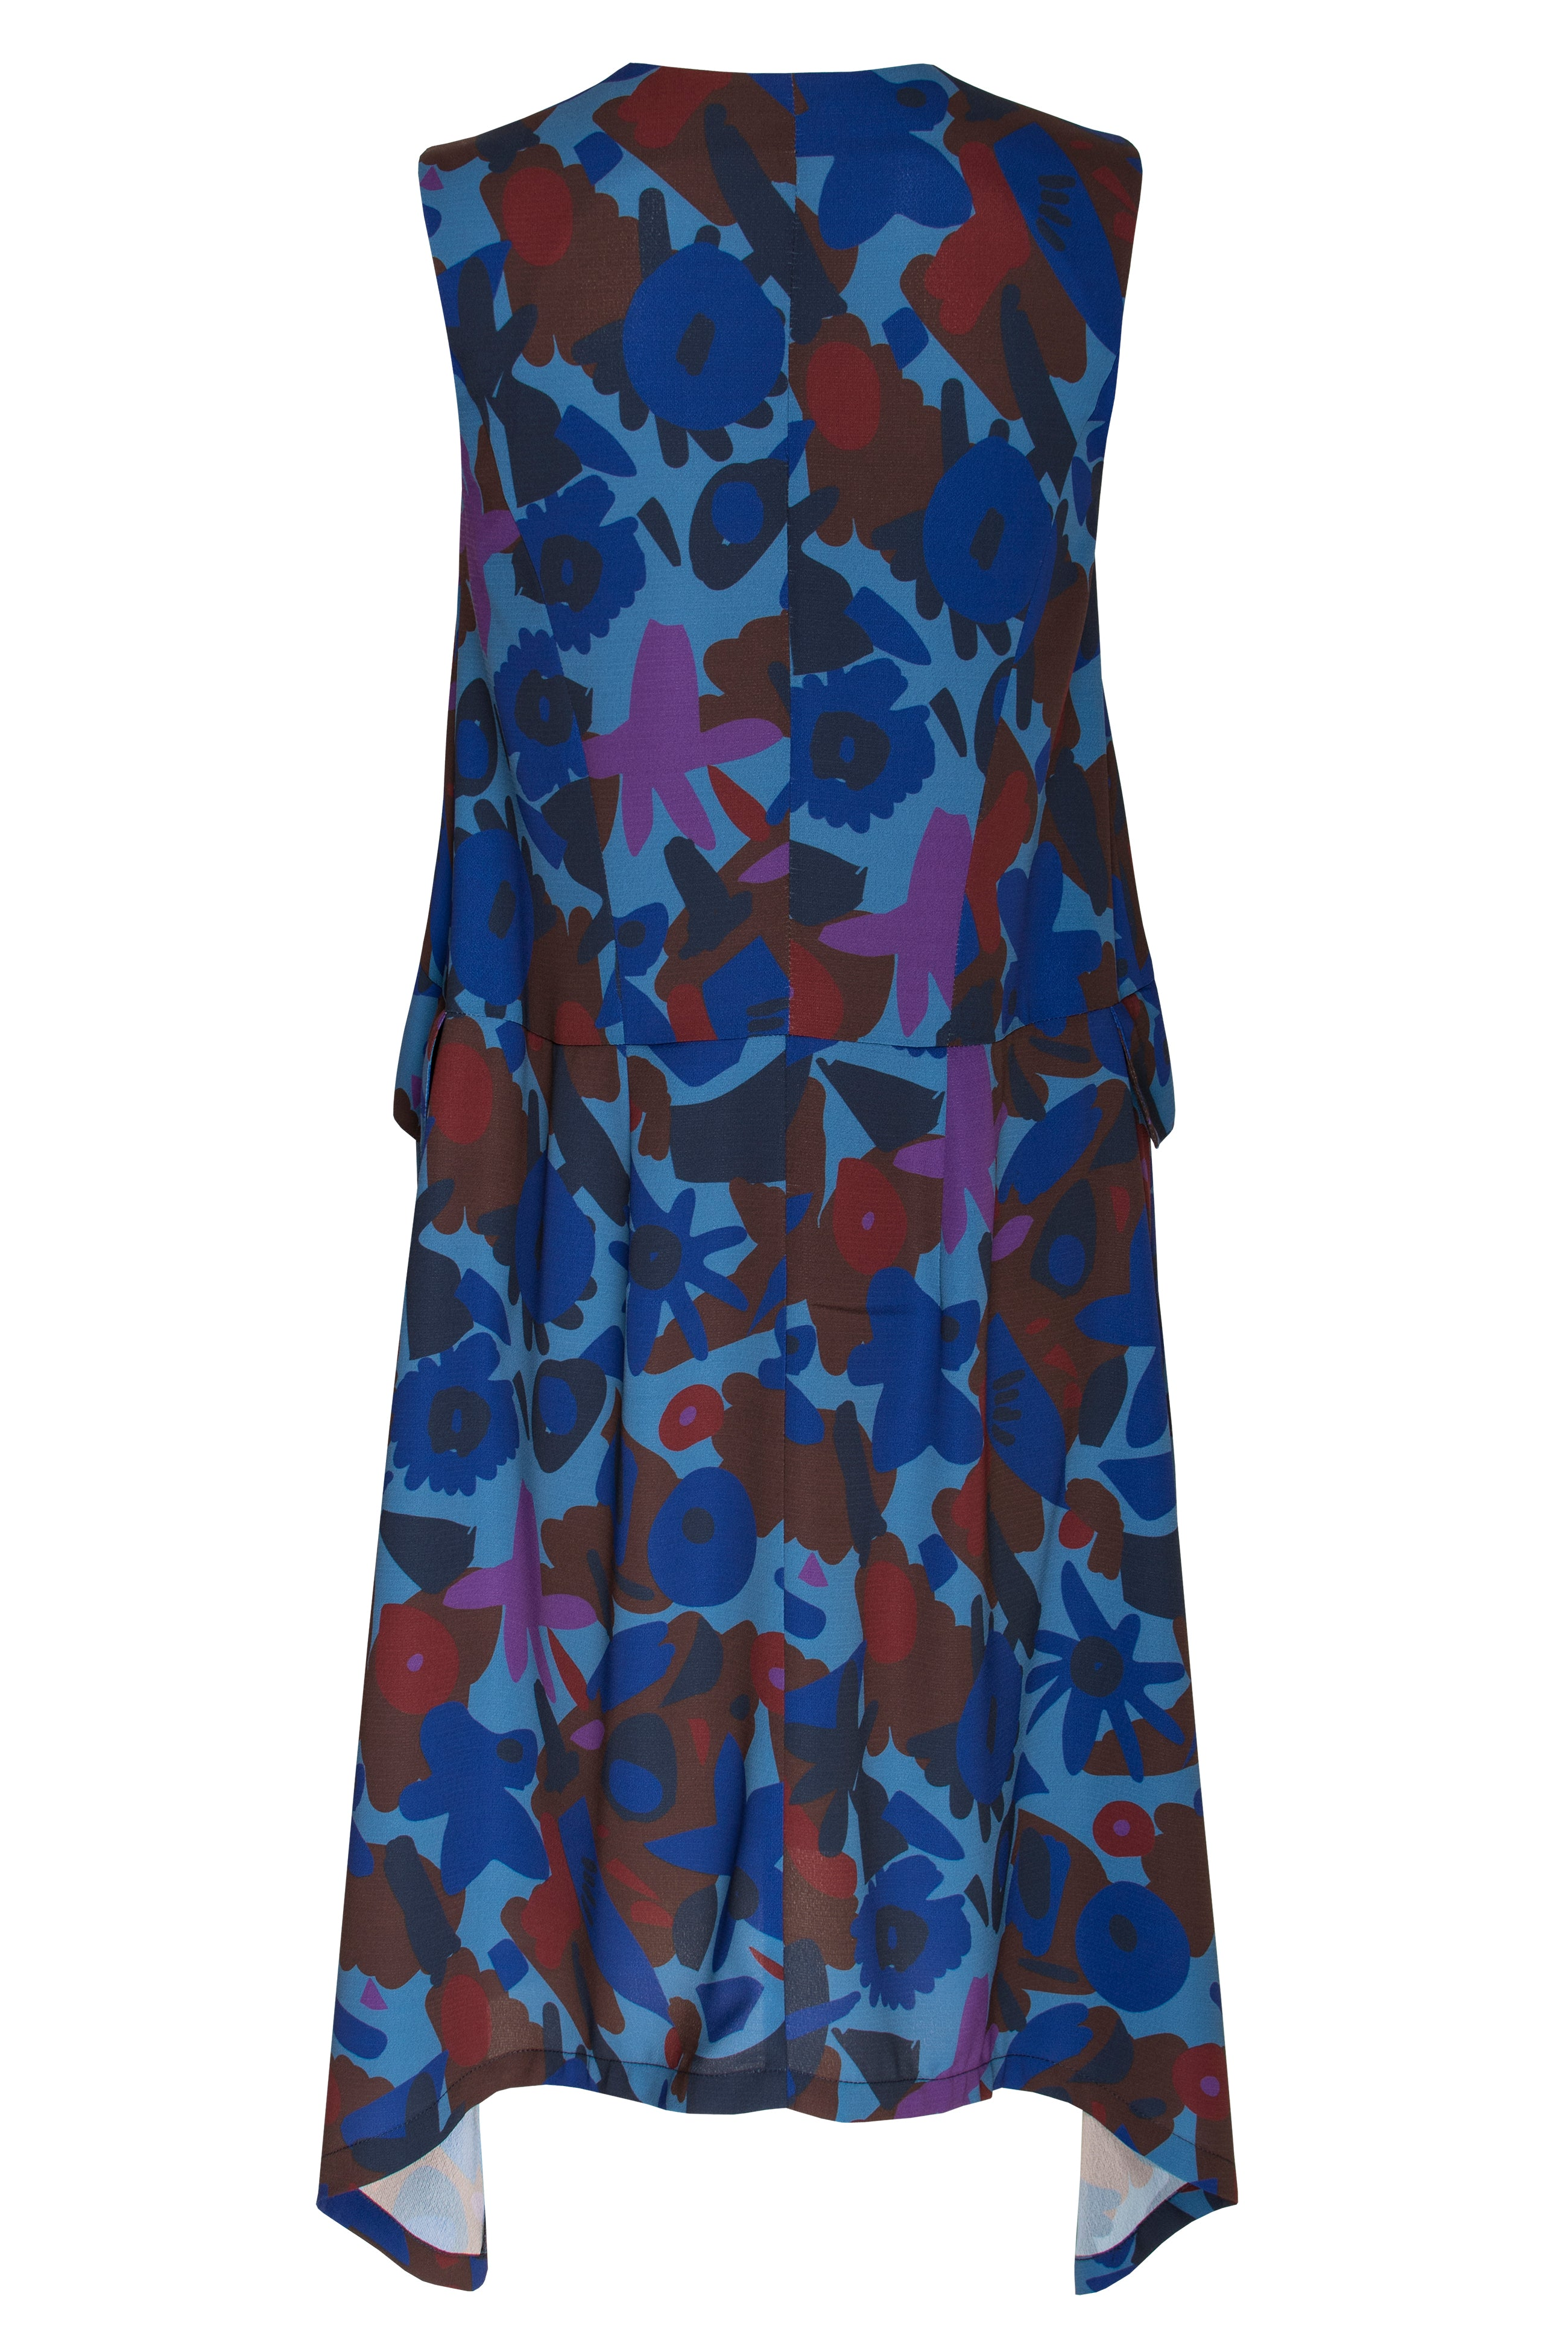 Blues/Wine Print V Neck Angle Hem Dress 6285